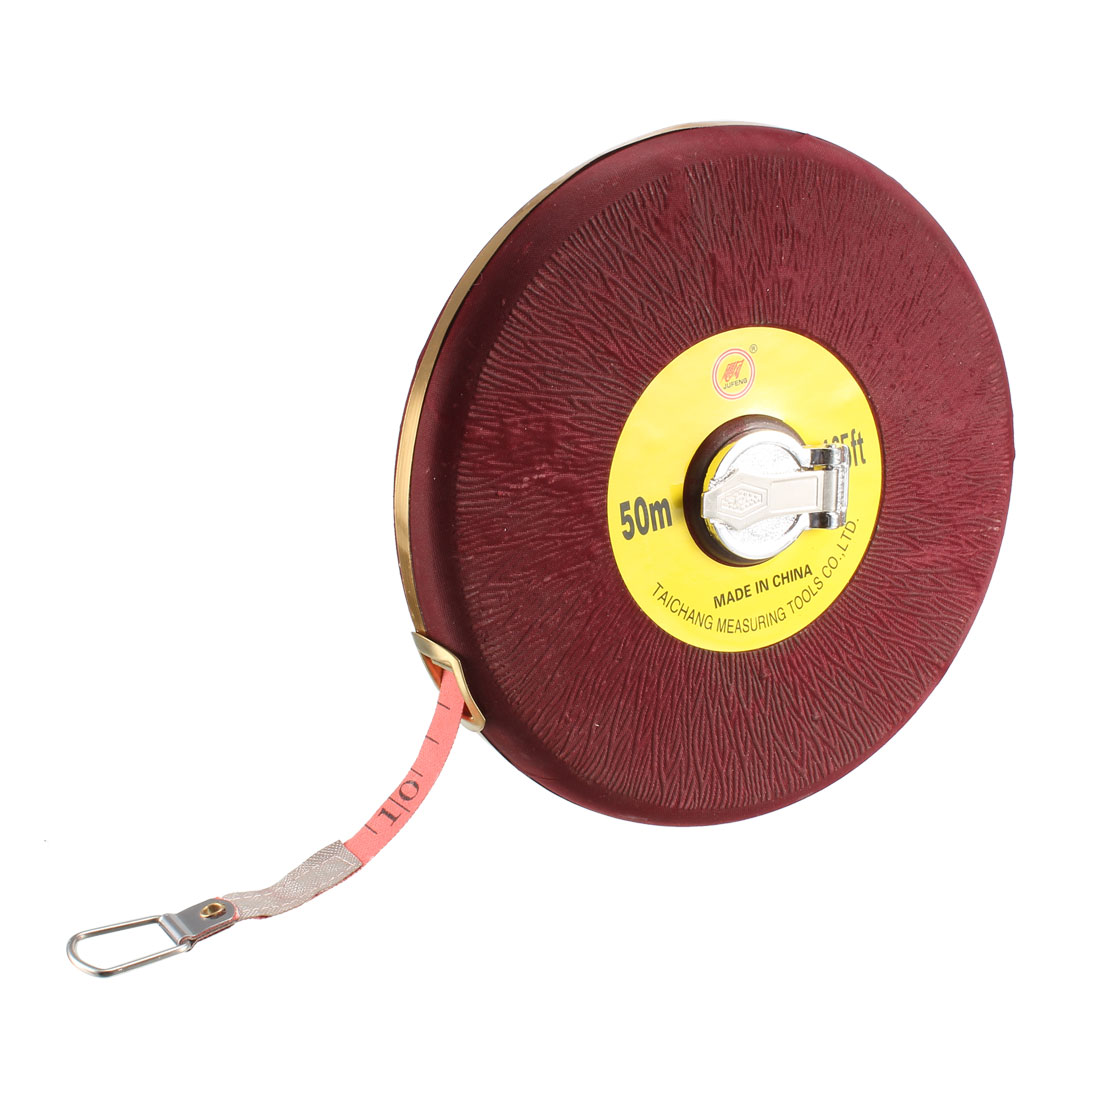 Retractable Sewing Cloth Measuring Tape 50M Length Round Case, Red